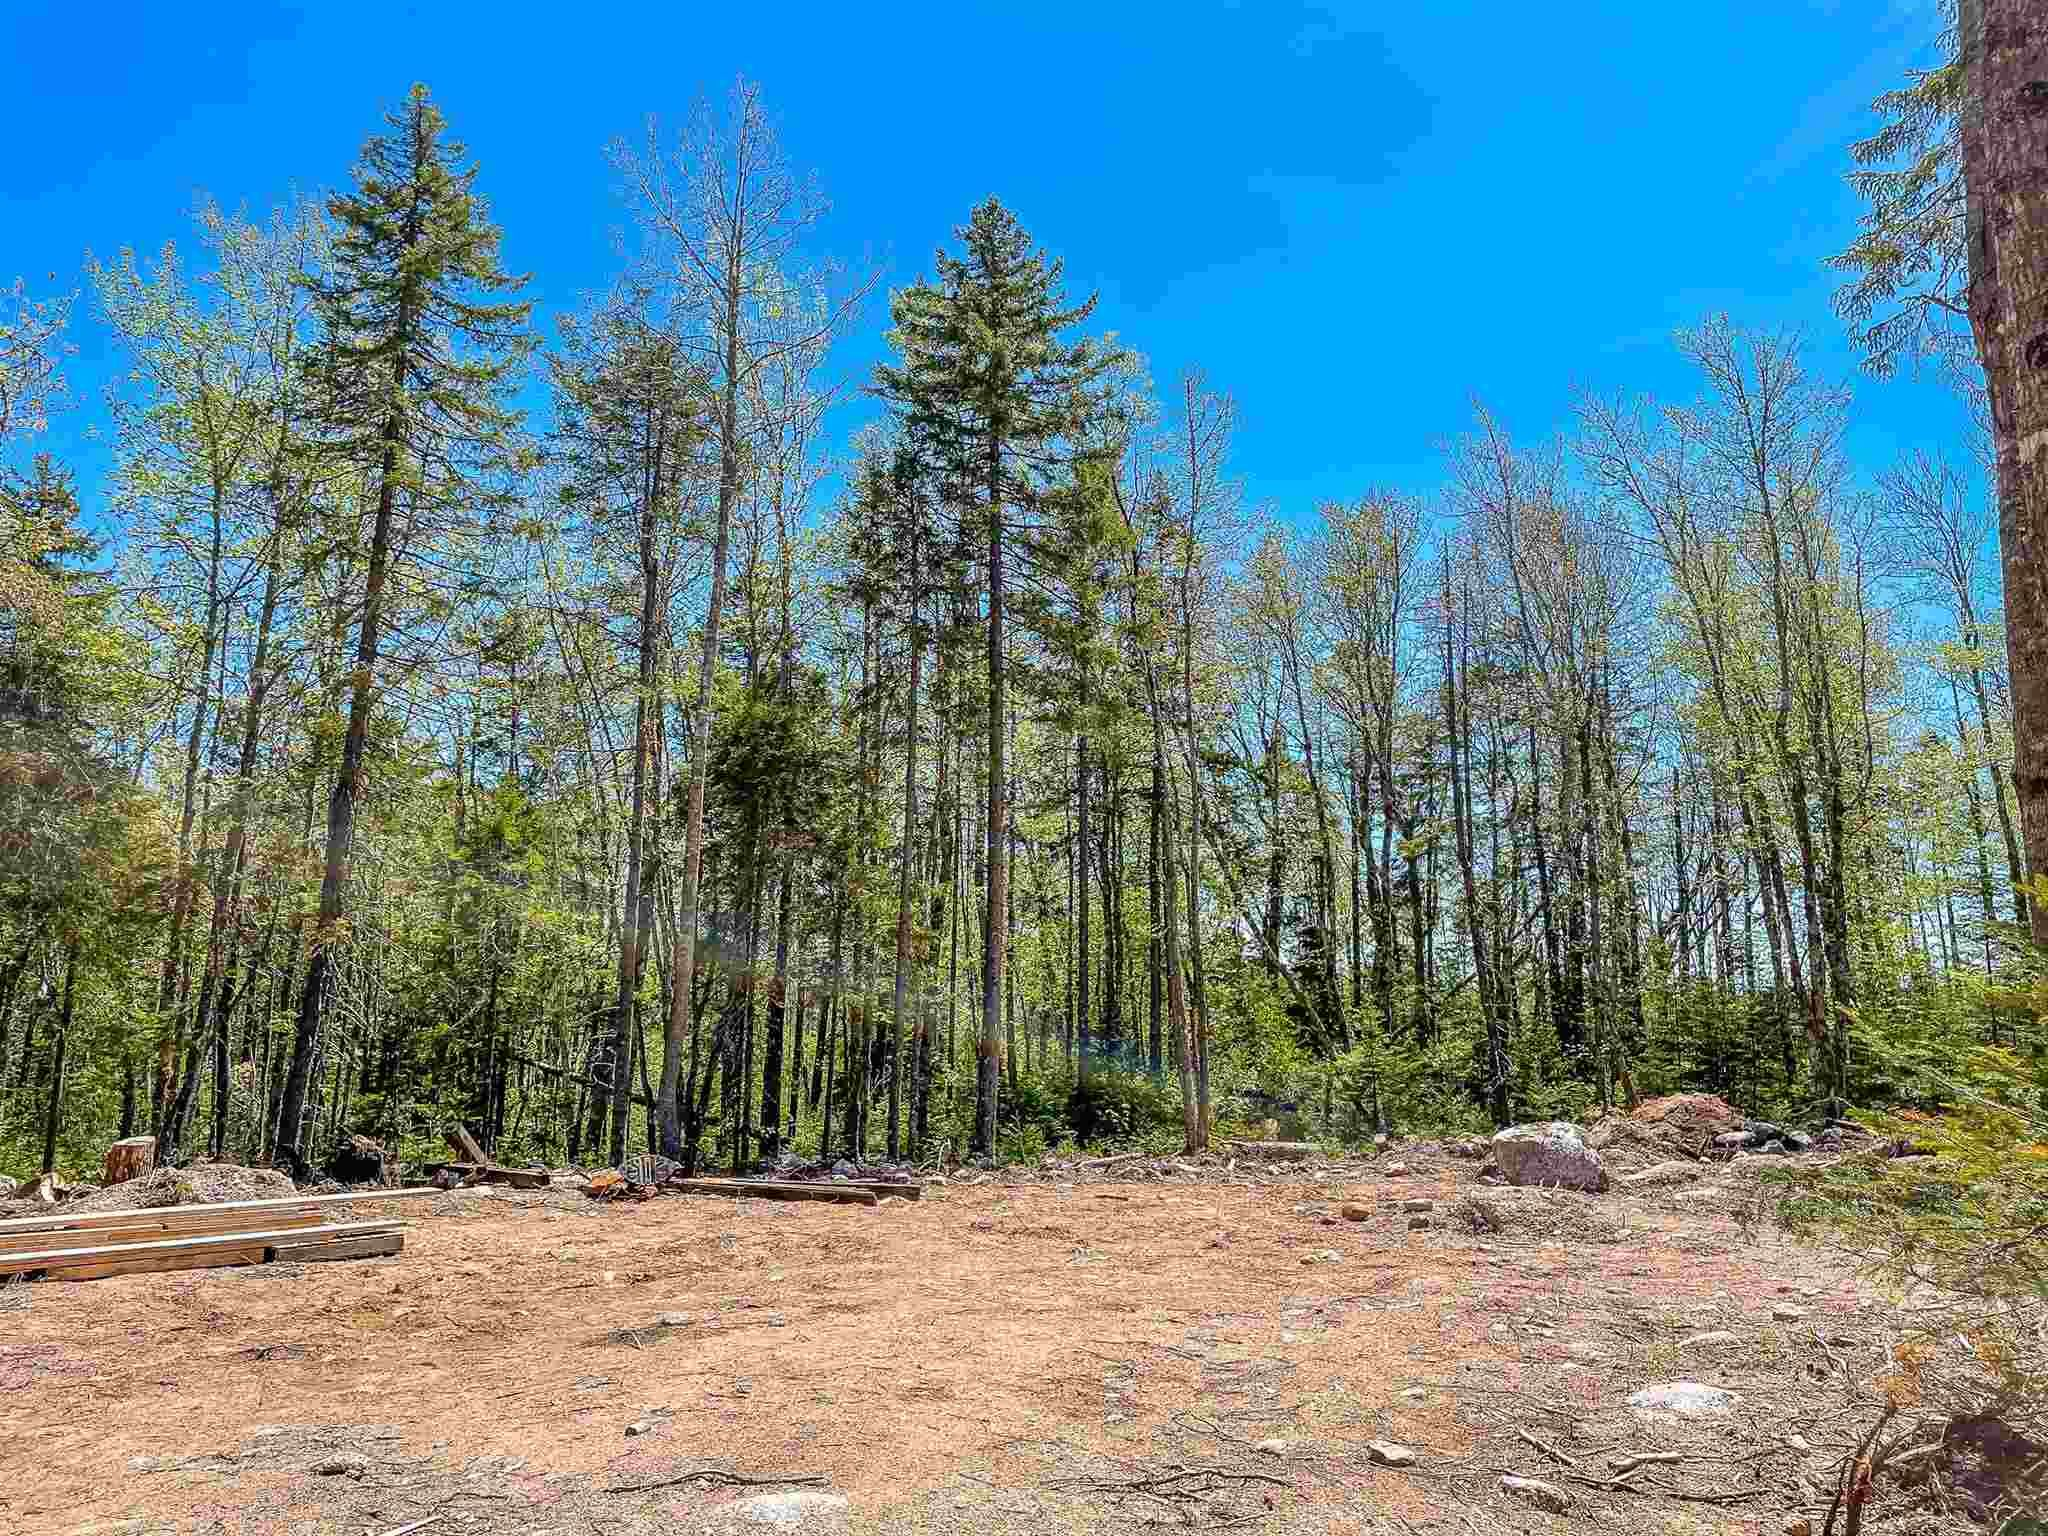 Main Photo: Lot 24 Loon Lane in Aylesford Lake: 404-Kings County Vacant Land for sale (Annapolis Valley)  : MLS®# 202117530